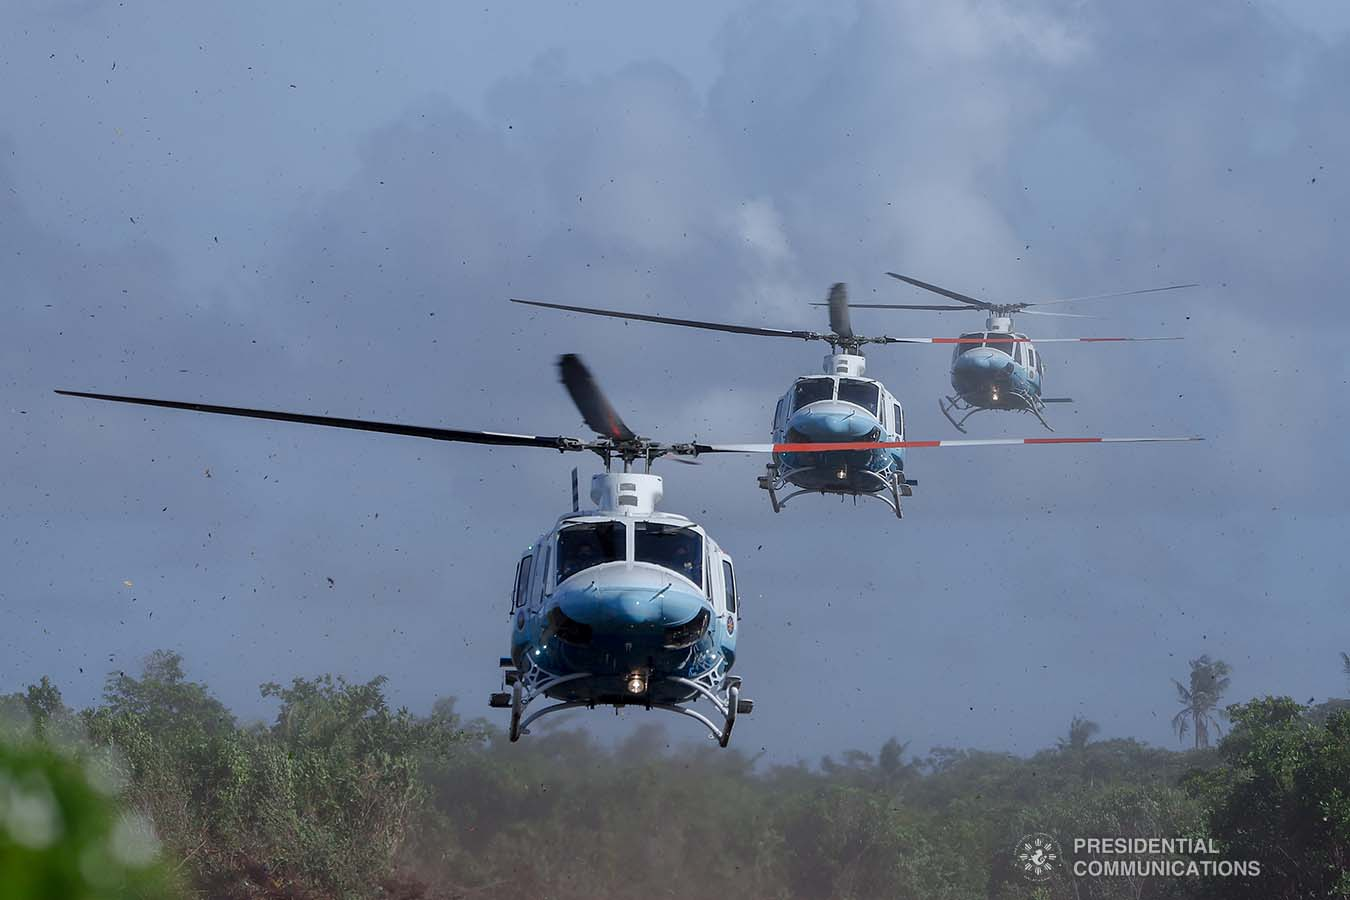 The convoy of helicopters carrying President Rodrigo Roa Duterte arrives at the Veterans Park Calicoan Island in Guiuan, Eastern Samar where the President will attend the 500th Anniversary of the Philippine Part in the First Circumnavigation of the World on March 18, 2021. REY BANIQUET/ PRESIDENTIAL PHOTO